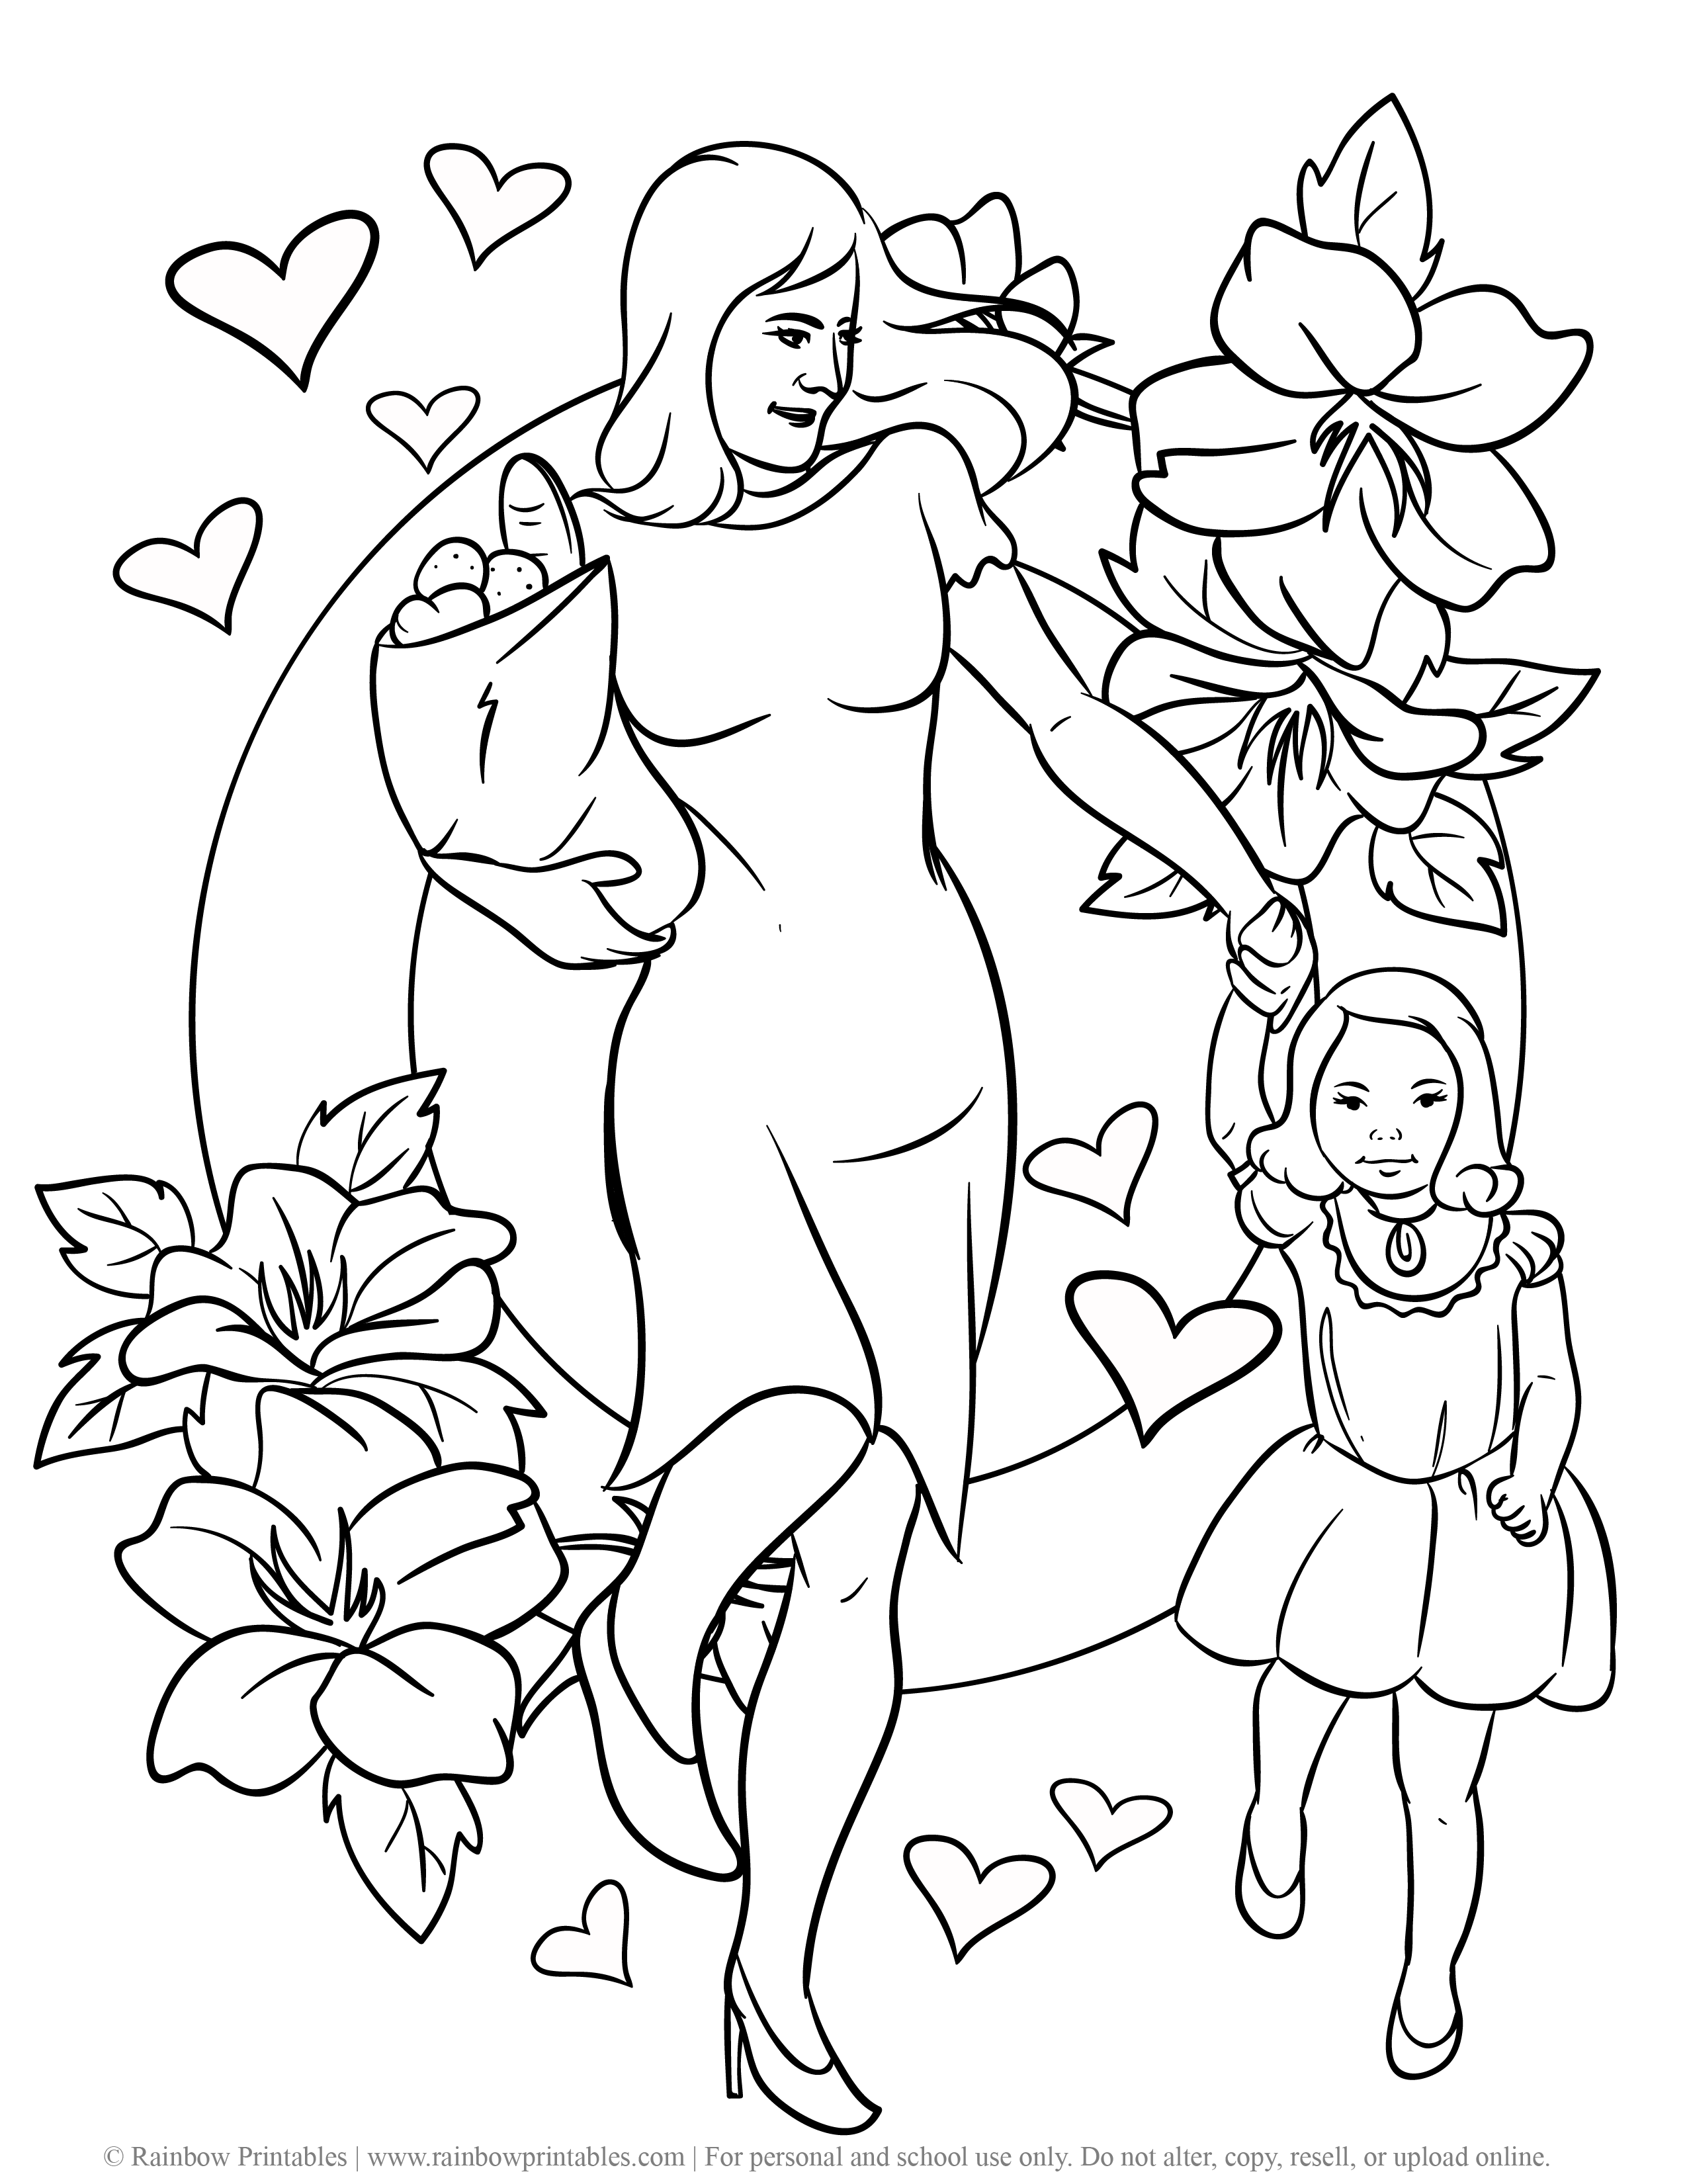 Free Coloring Pages for Kids Drawing Activities Line Art Illustration MOM SHOPPING HOLDING HANDS WITH BABY GIRL SHOPPING HAPPY MOTHERS DAy